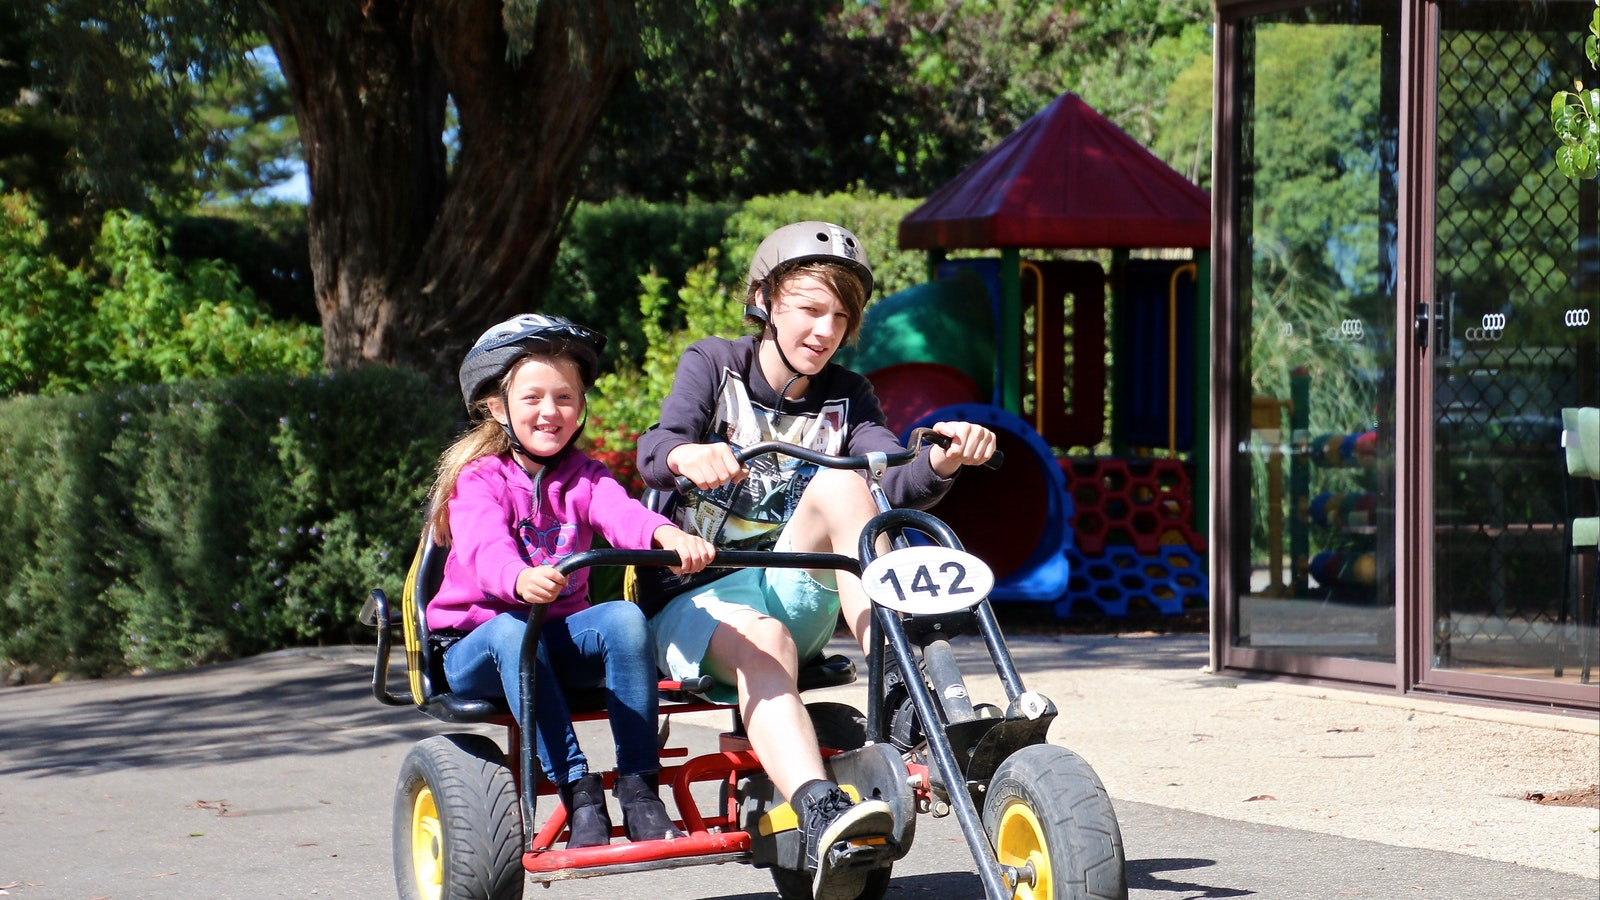 Pedal Karts for Hire